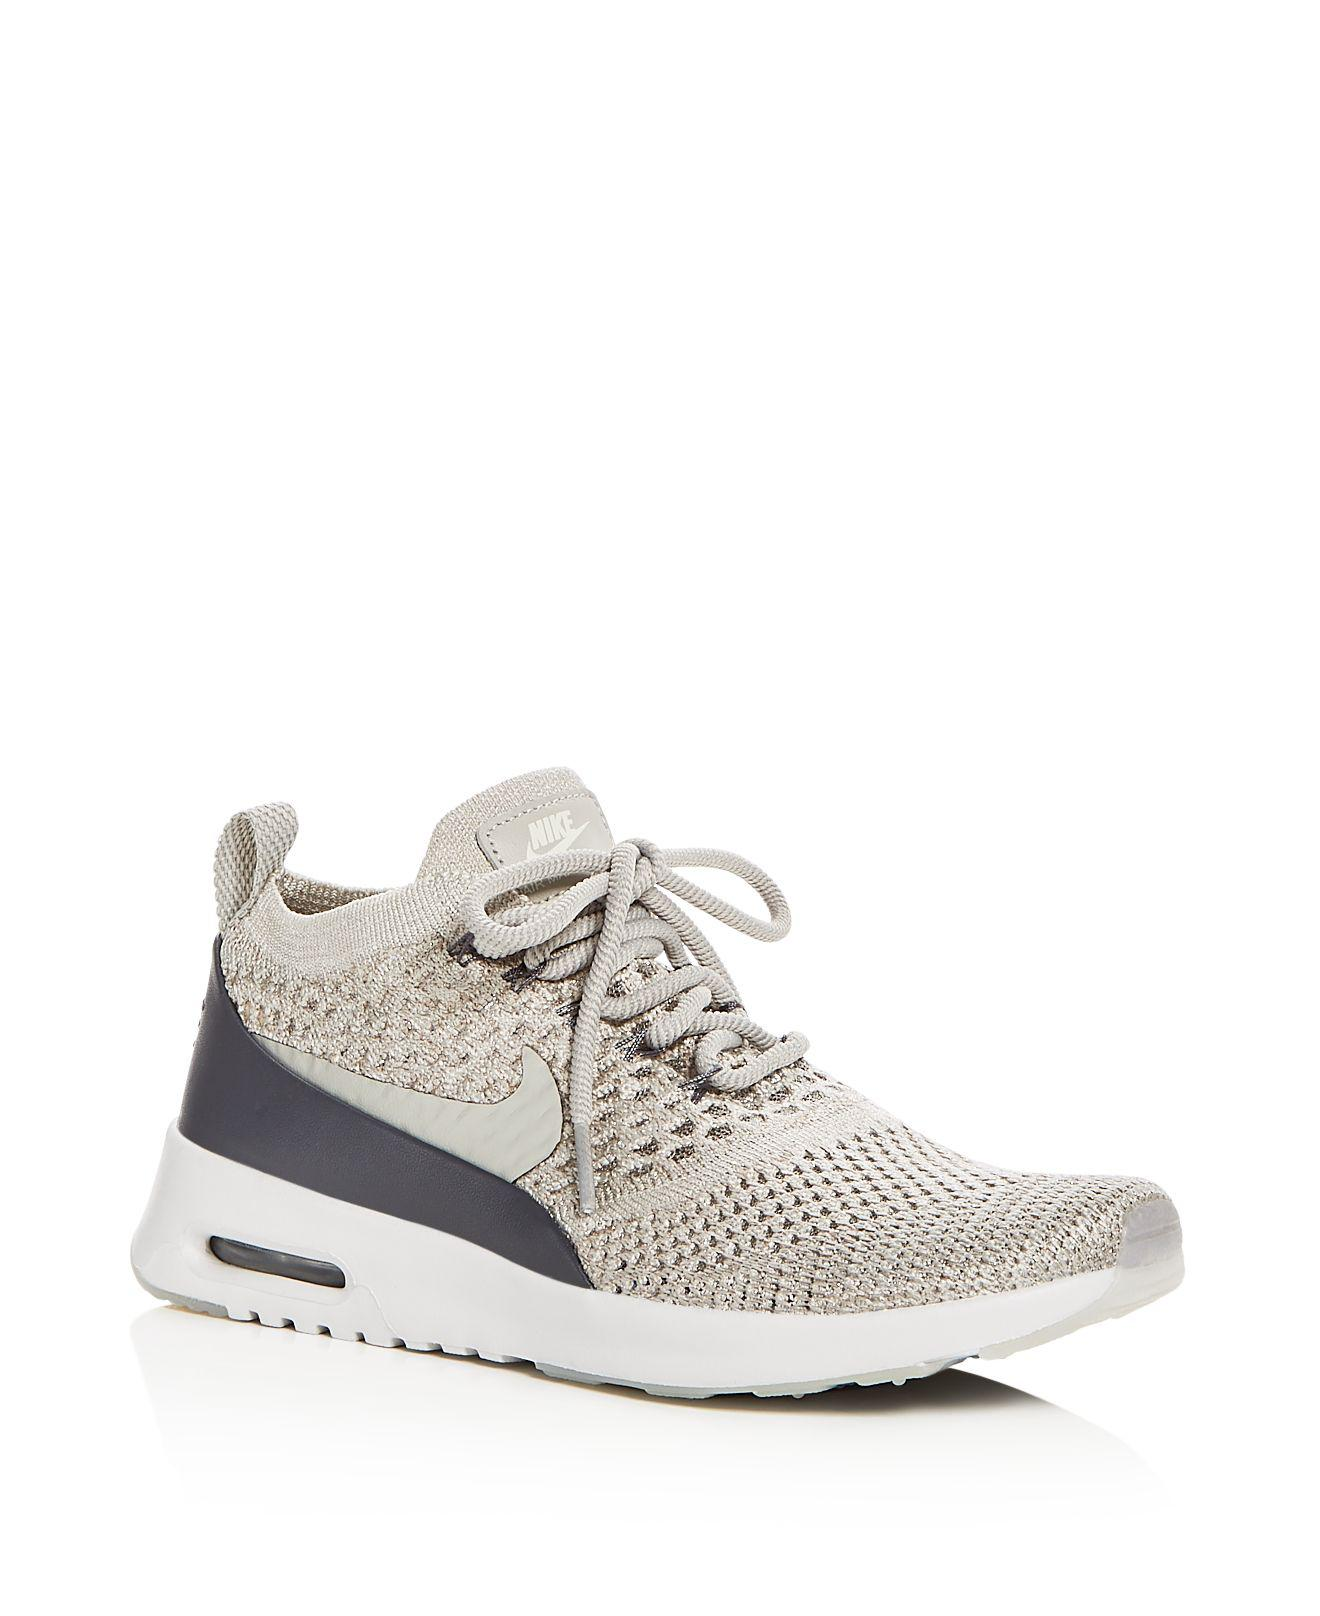 Nike. Gray Women's Air Max Thea Ultra Flyknit ...